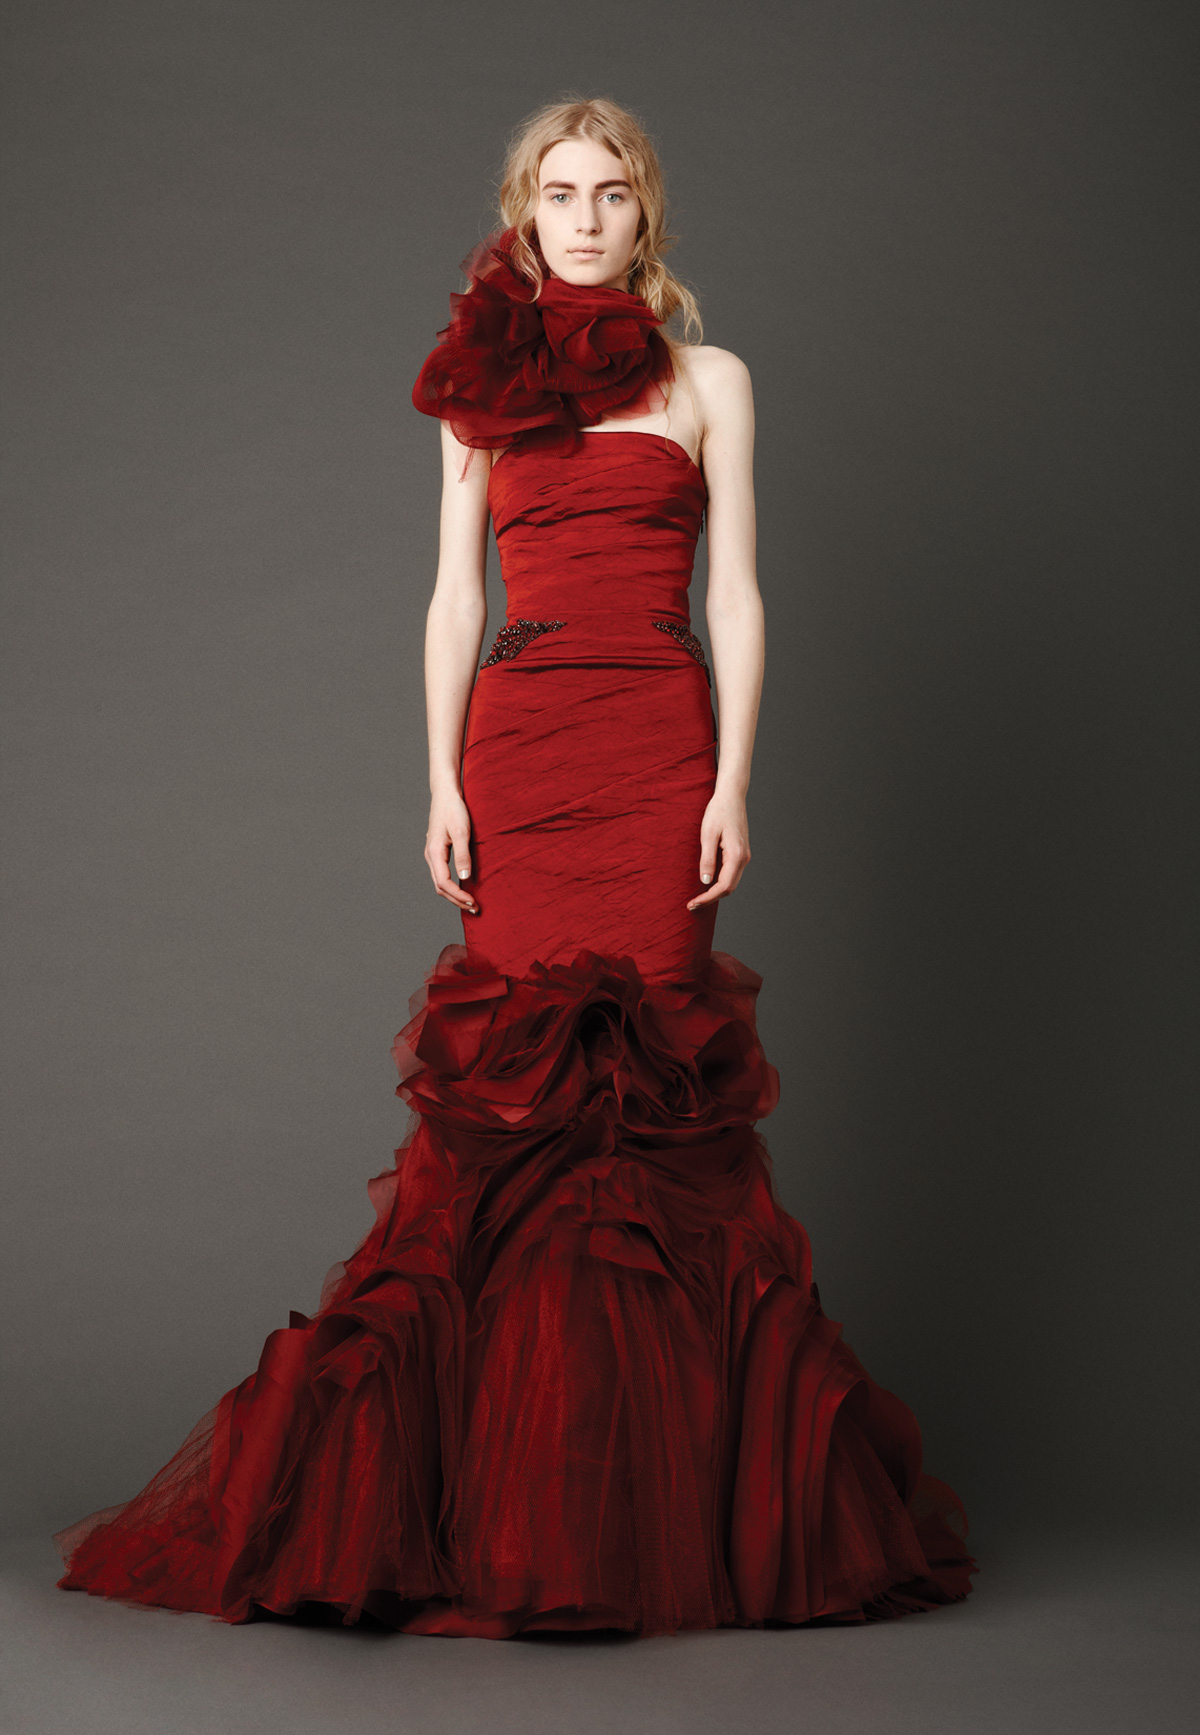 red wedding dresses vera wang sangmaestro On dark red wedding dress